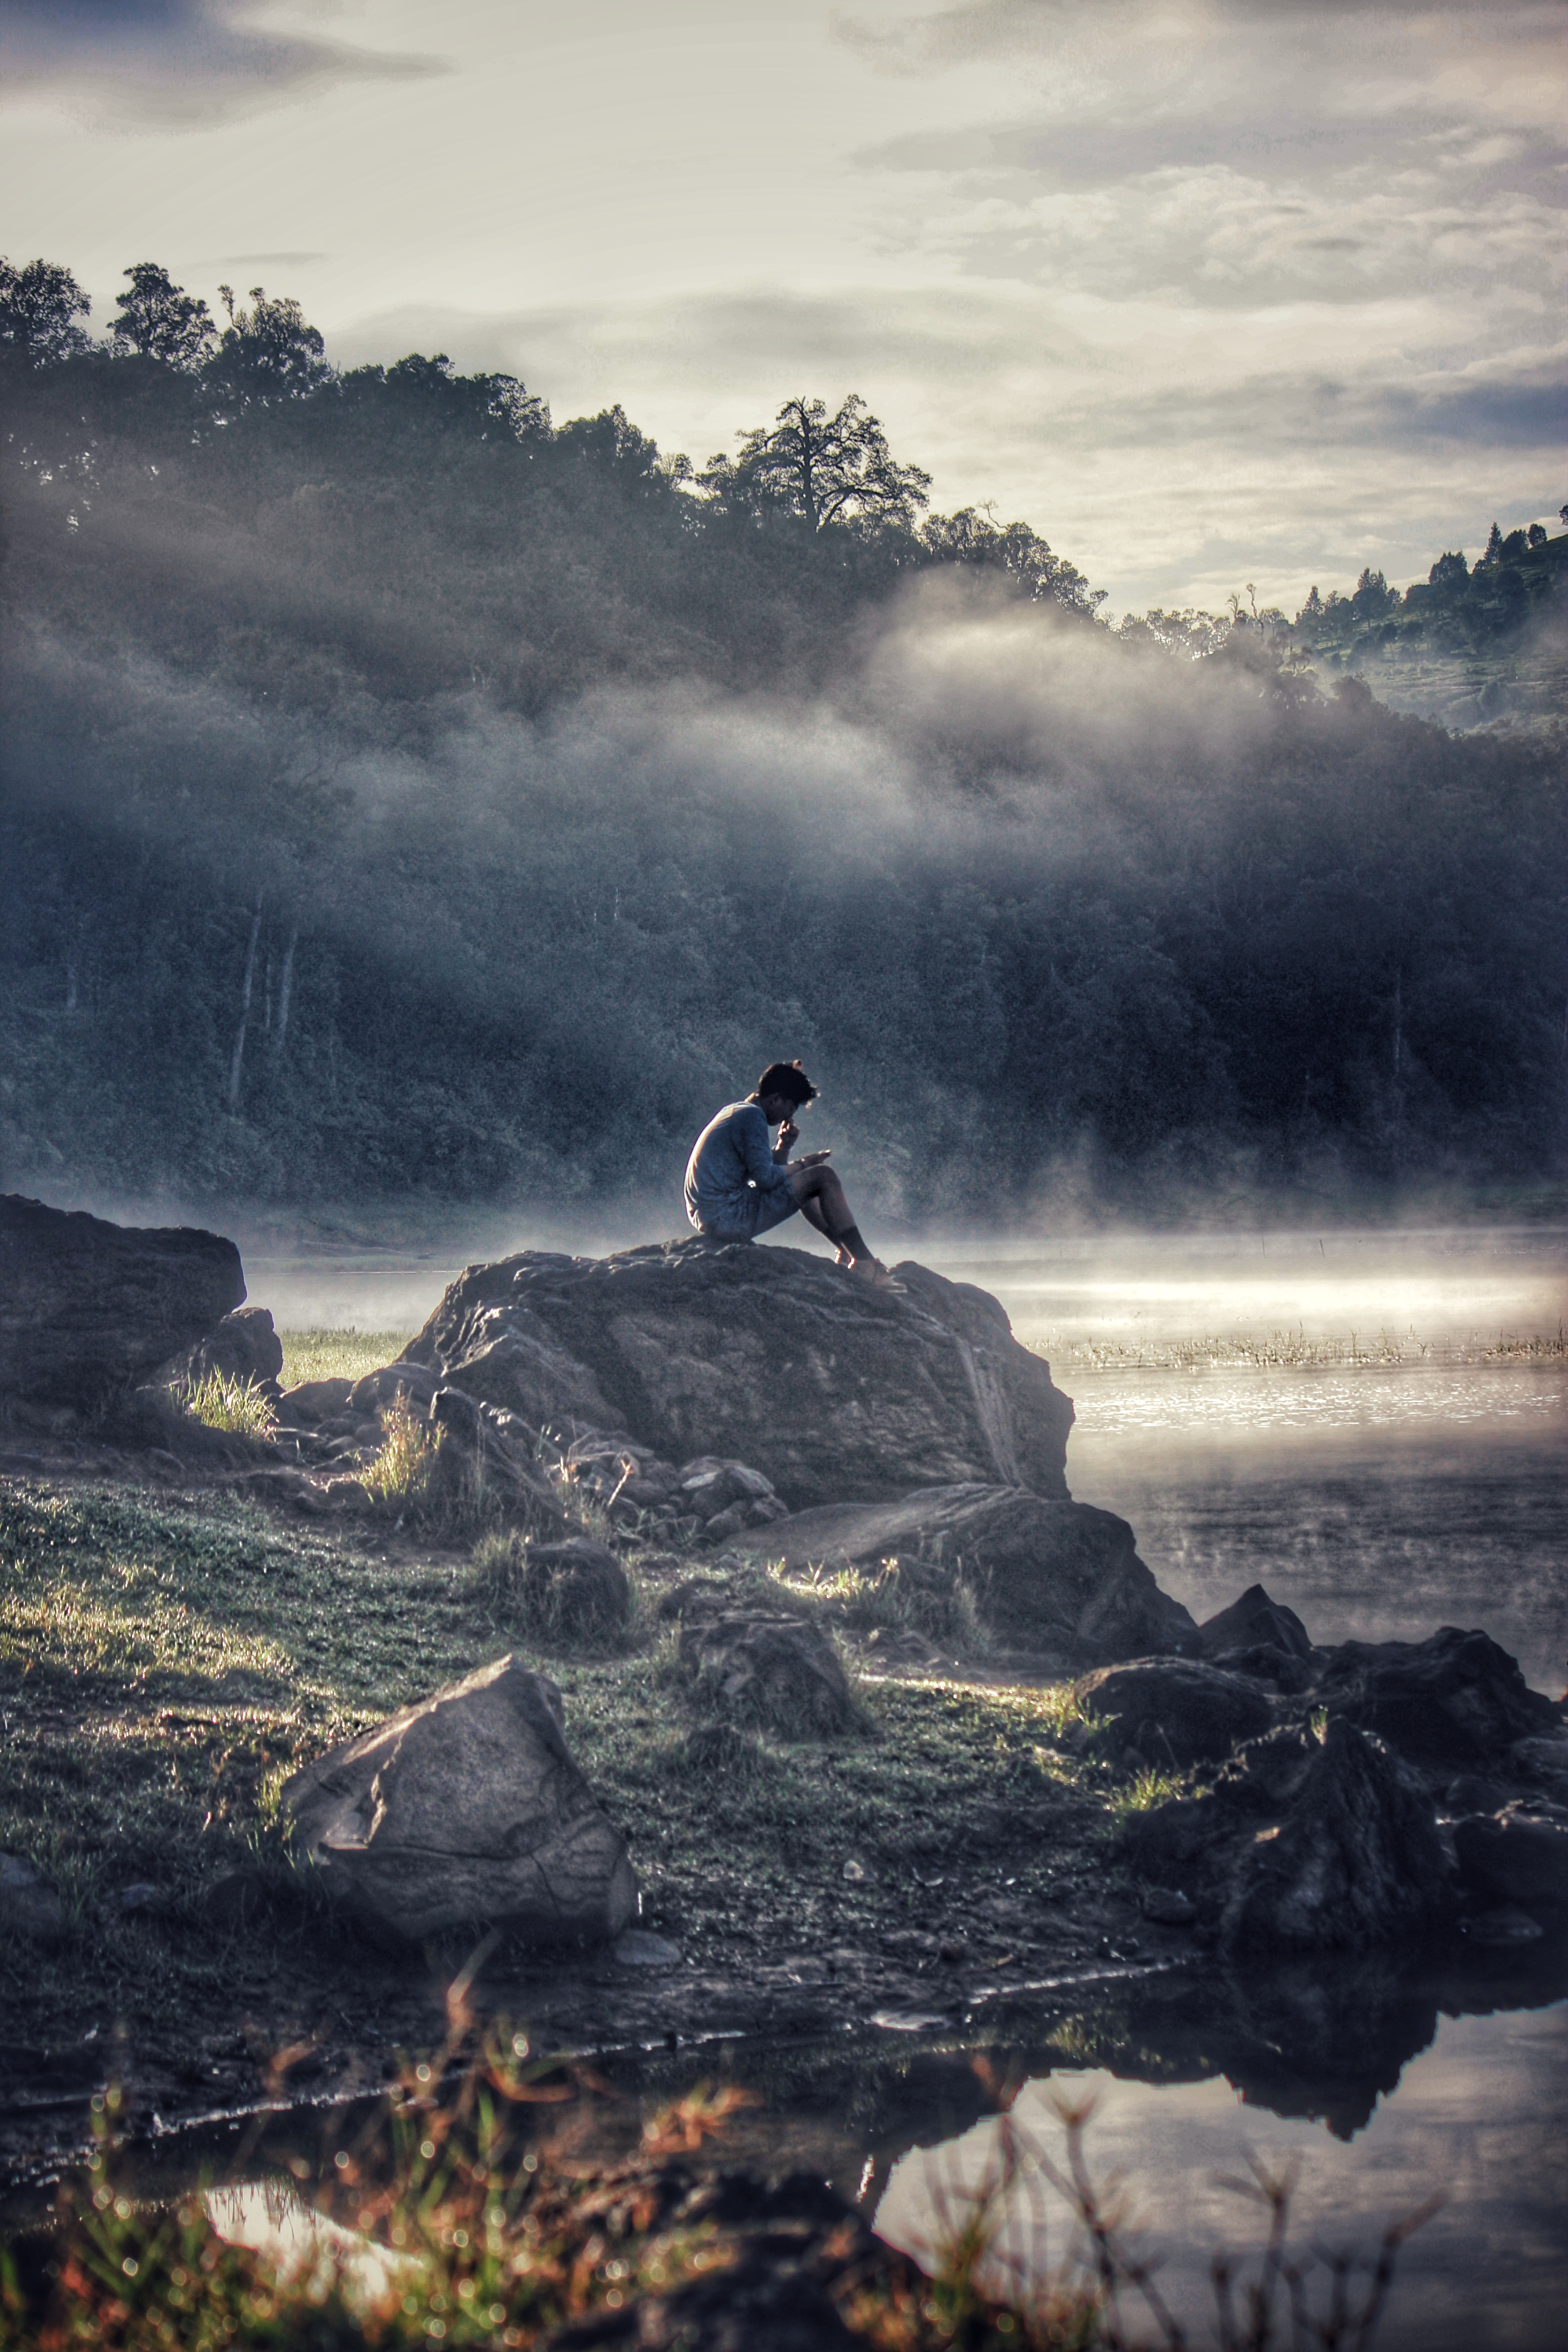 Wallpaper Download Alone Girl Man In Gray Shit Sitting On Rock Boulder 183 Free Stock Photo